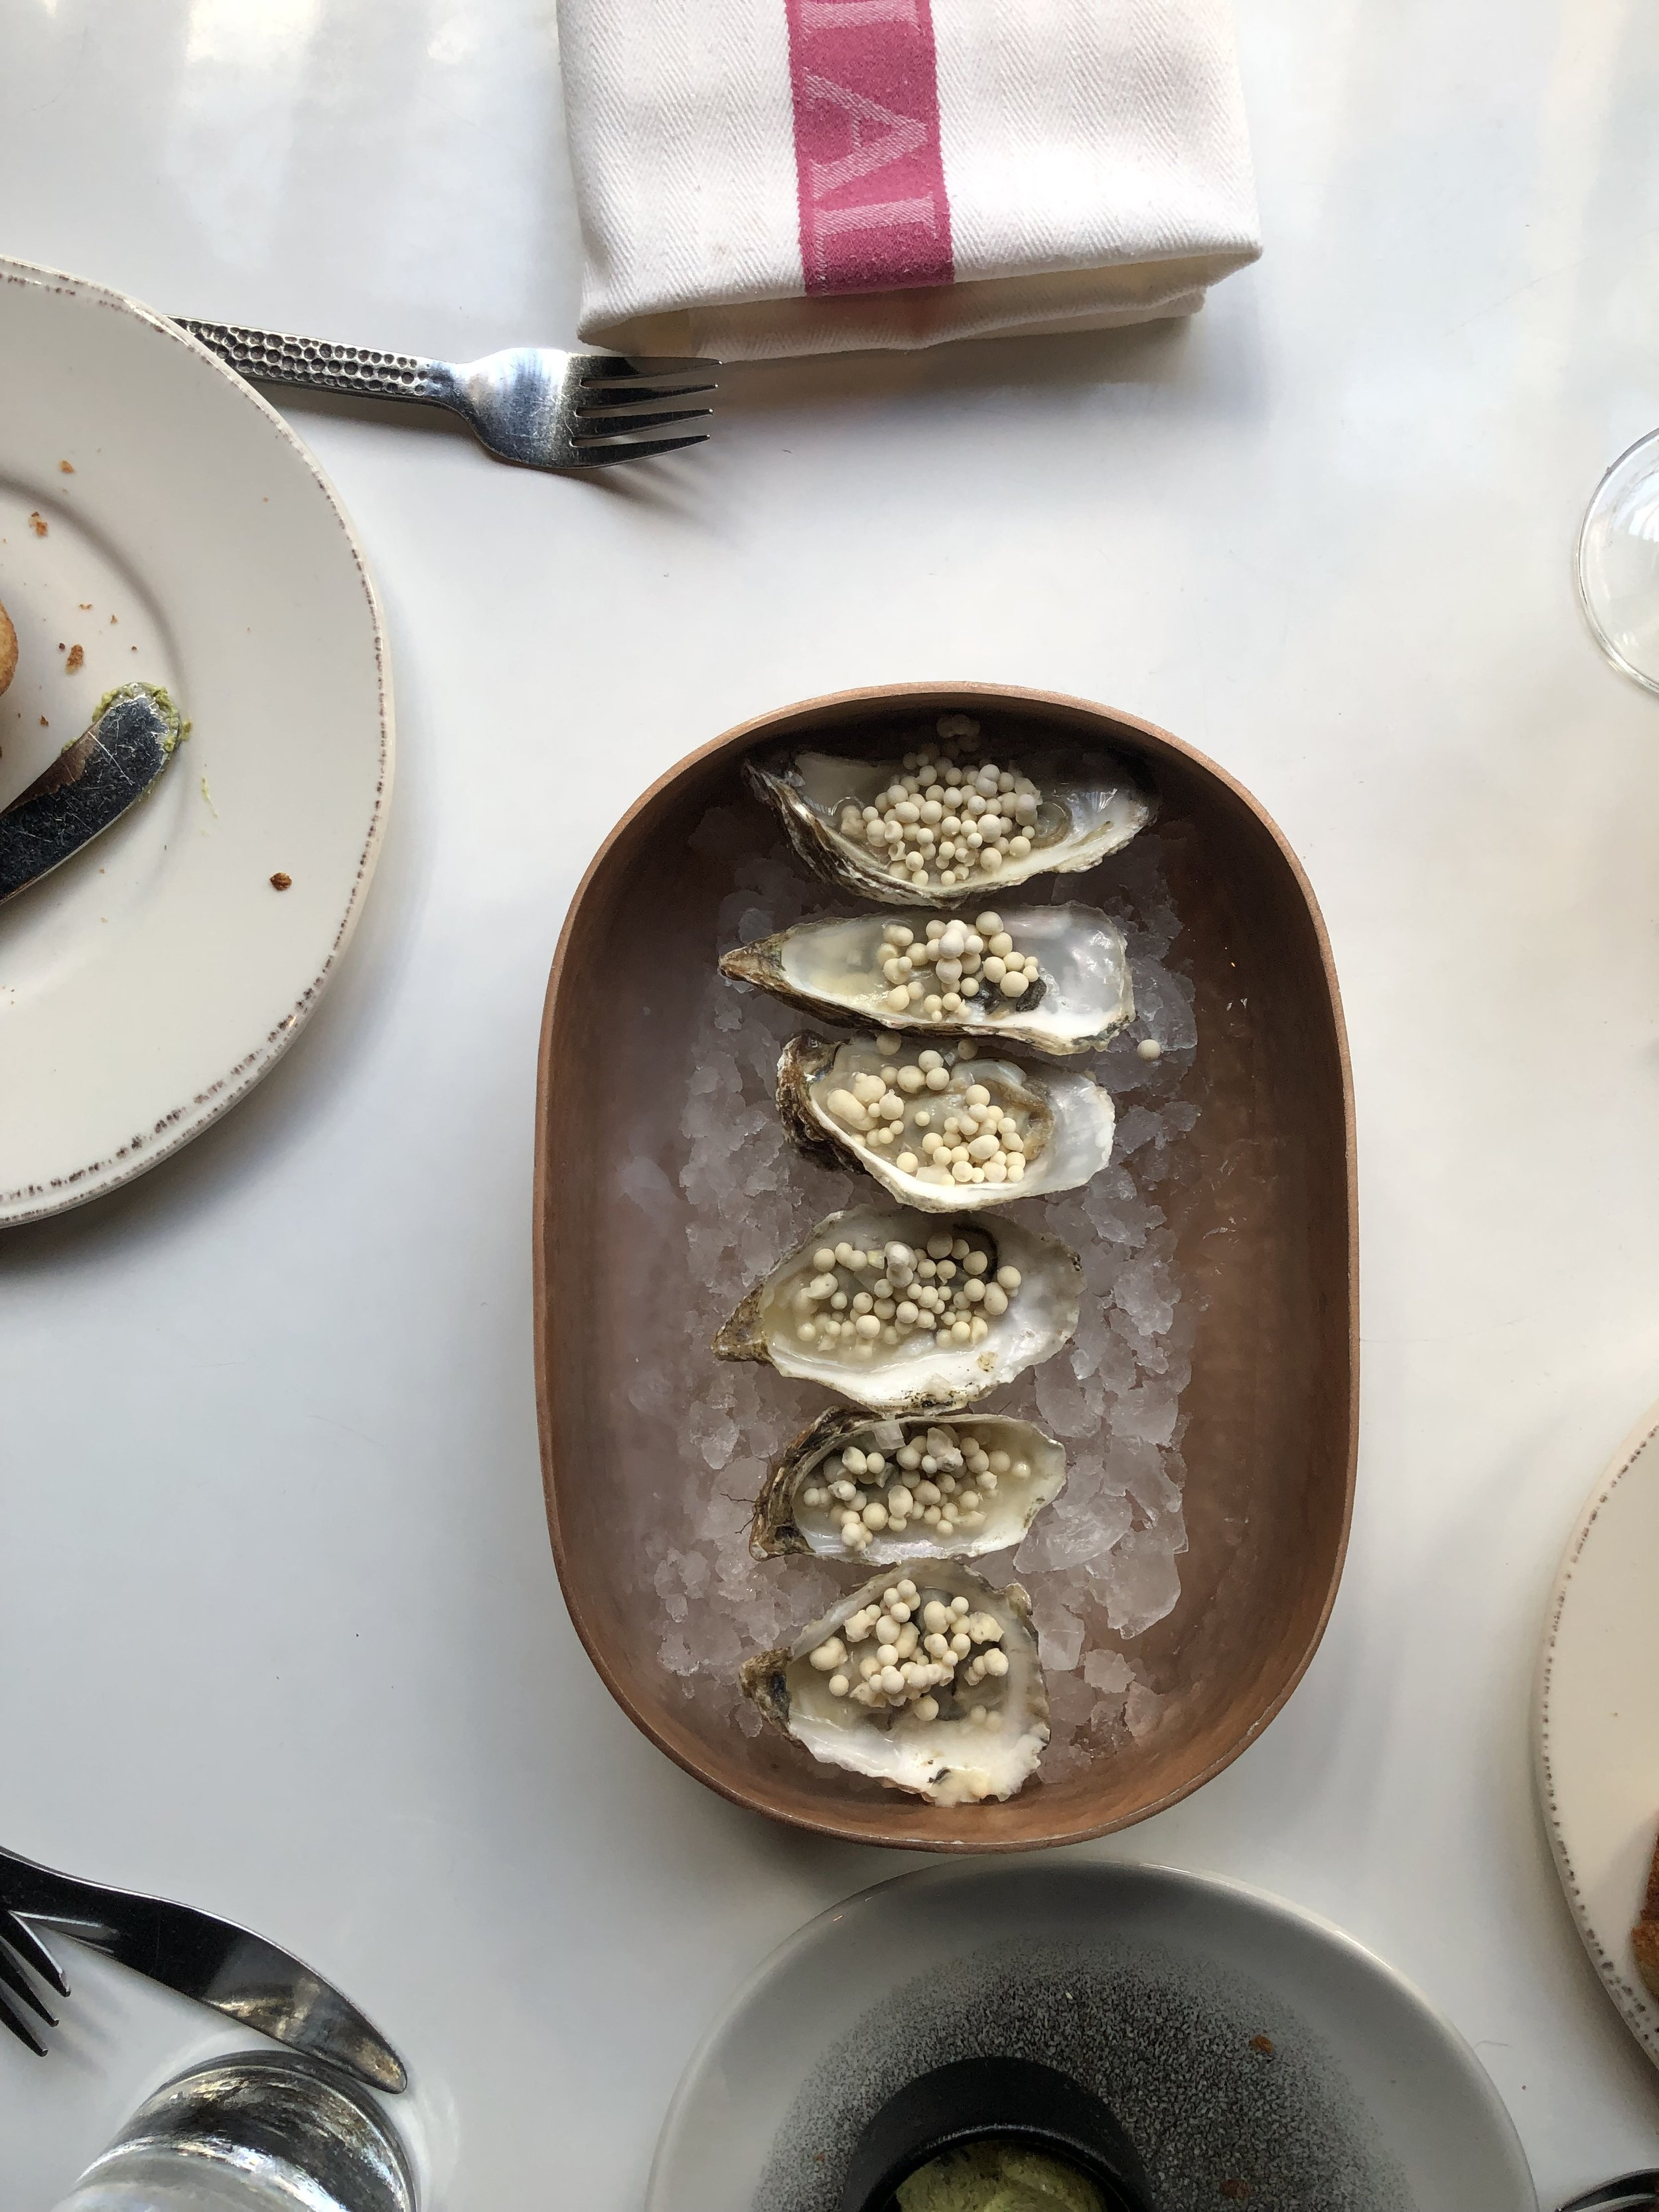 This dish was (literally) cool. Oysters with Meyer lemon pearls. They were like dip'n dots! You can see more of what we had on my SD IG highlights reel. These are just a sampling of what we ordered!